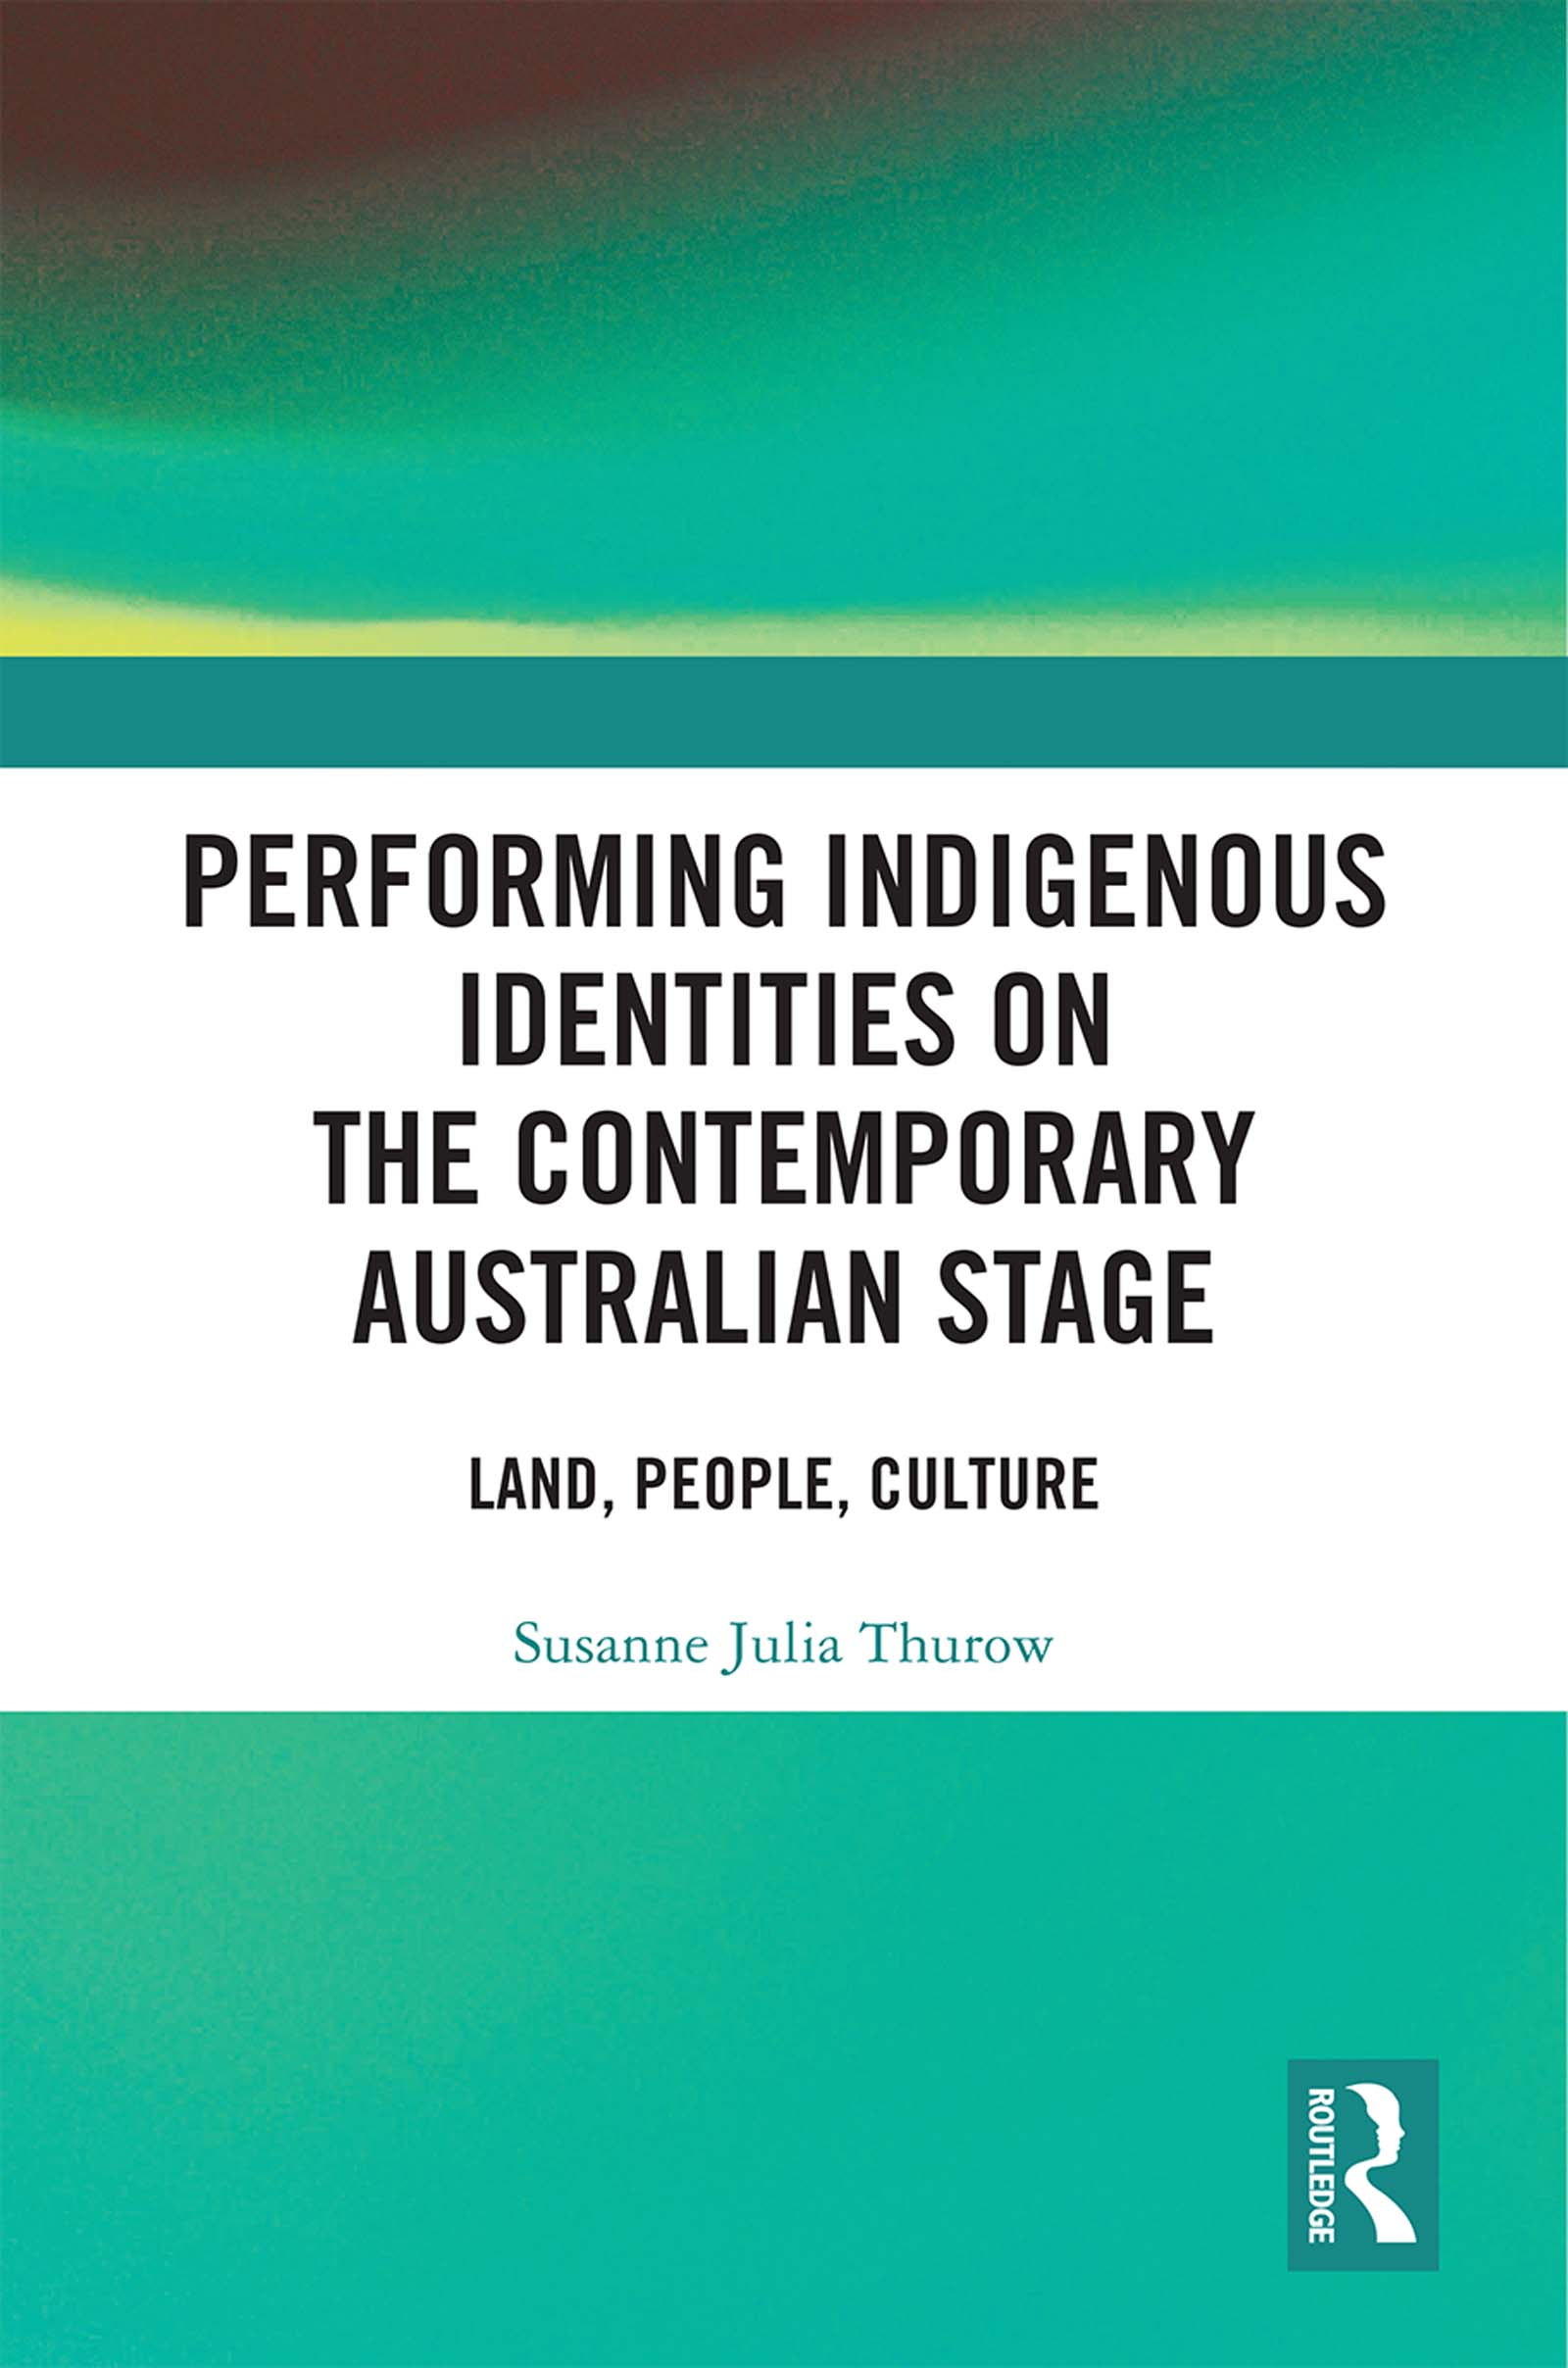 Performing Indigenous Identities on the Contemporary Australian Stage: Land, People, Culture book cover